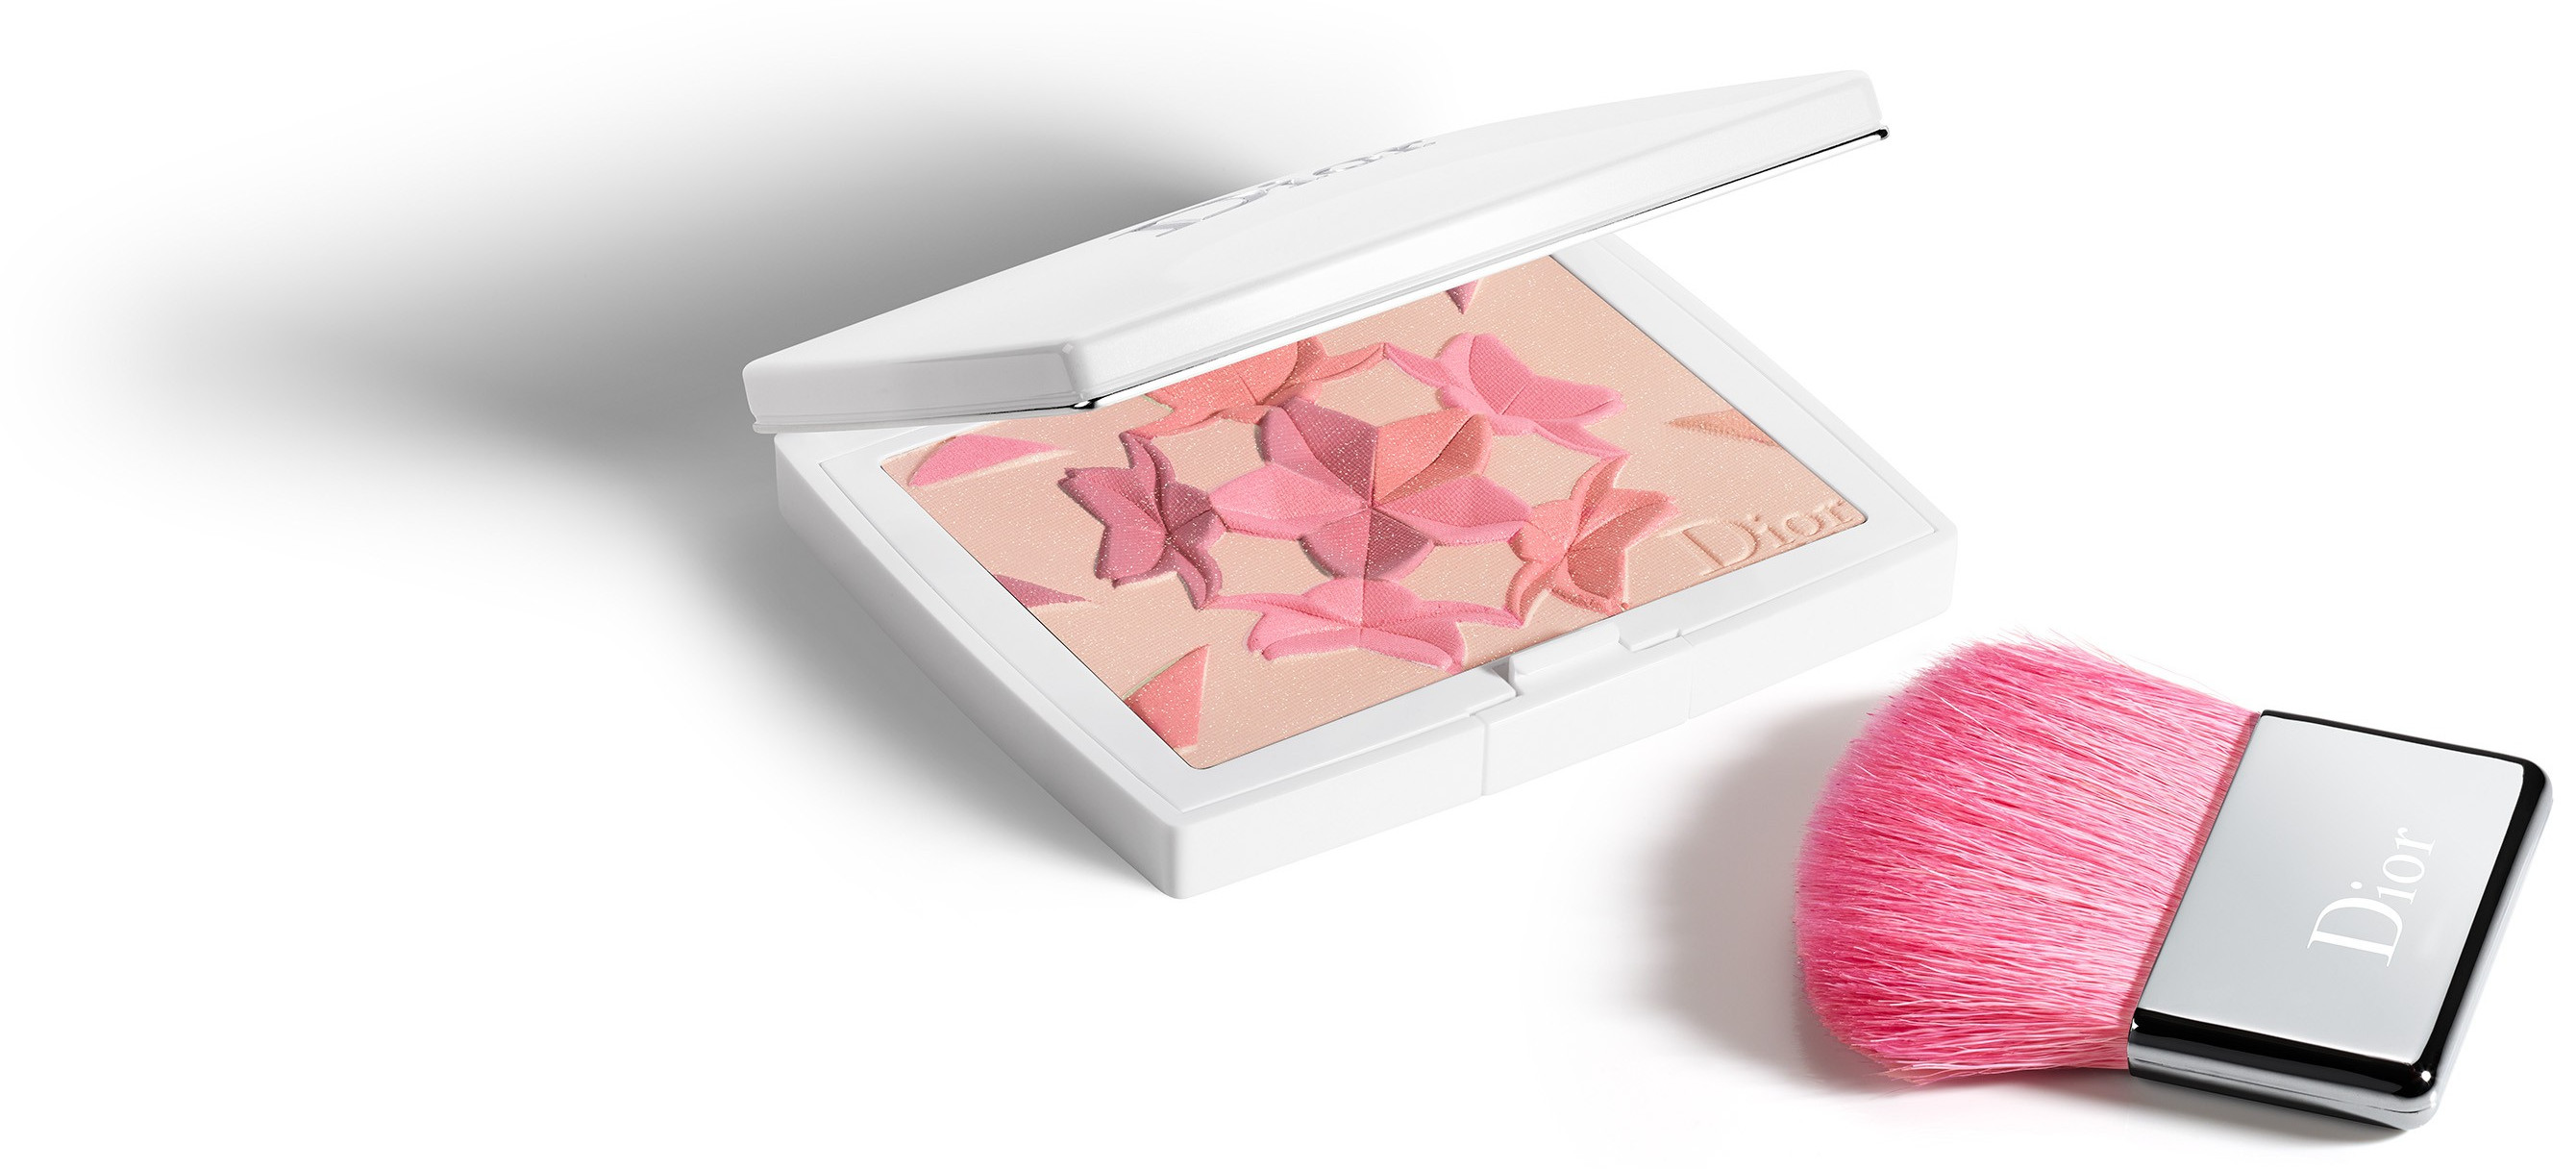 Dior Diorsnow Spring 2018 Collection Snow Blush & Bloom Powder